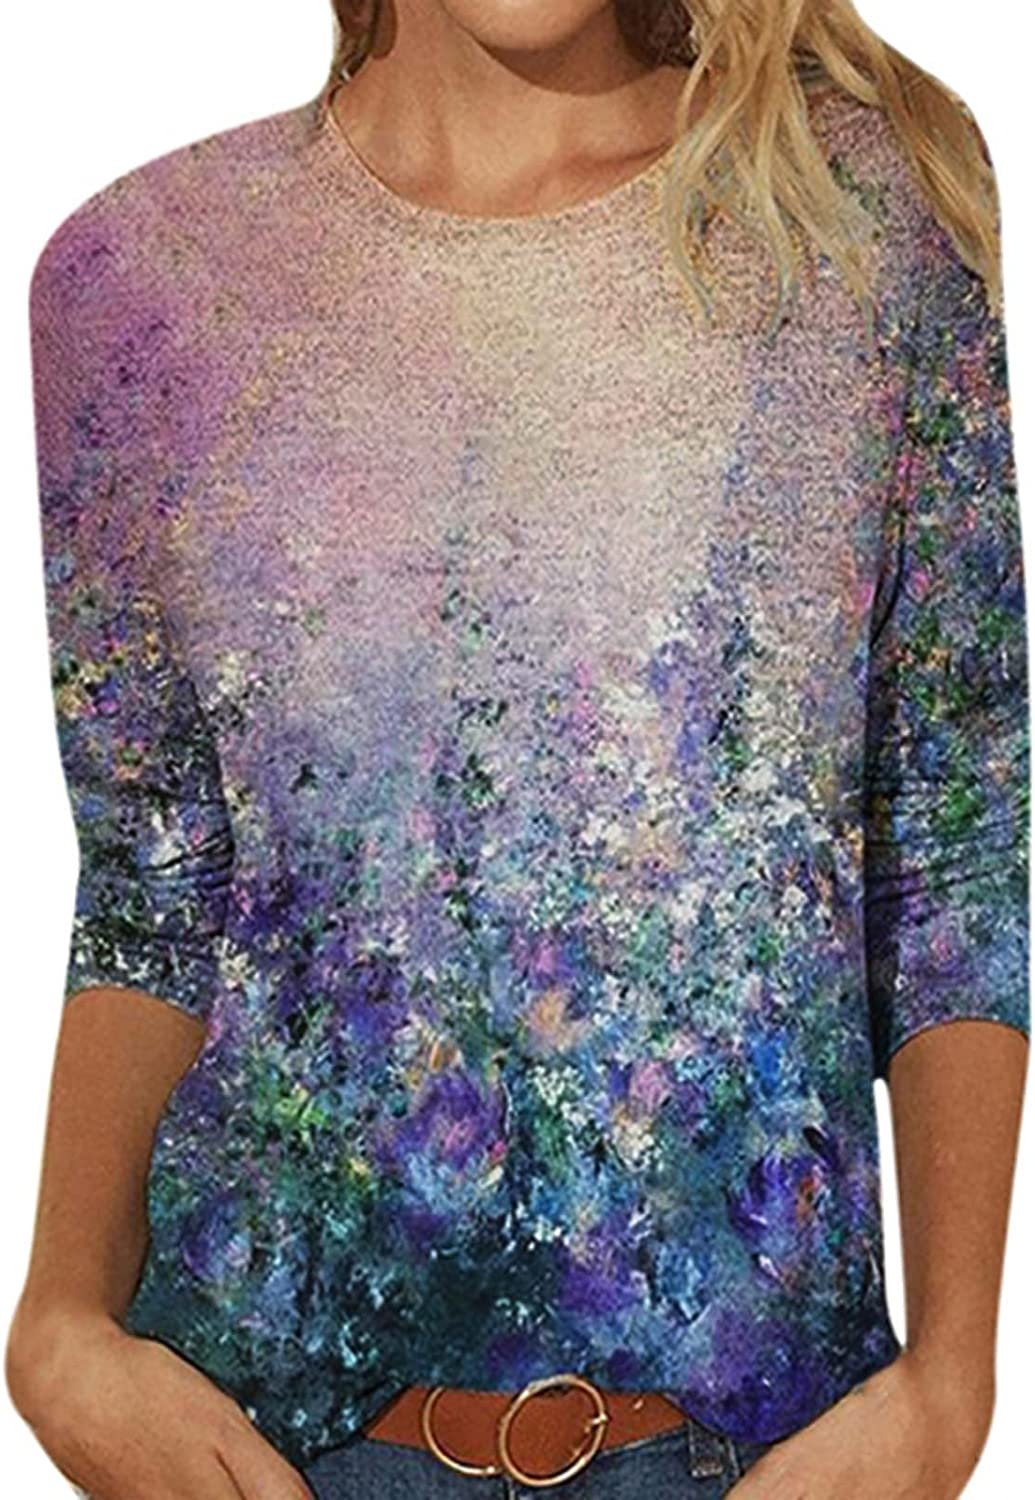 3/4 Sleeve Tops for Women Fashion Crewneck Floral Print Tee Shirts Summer Vintage Pullover Loose Comfy Plus Size Blouse